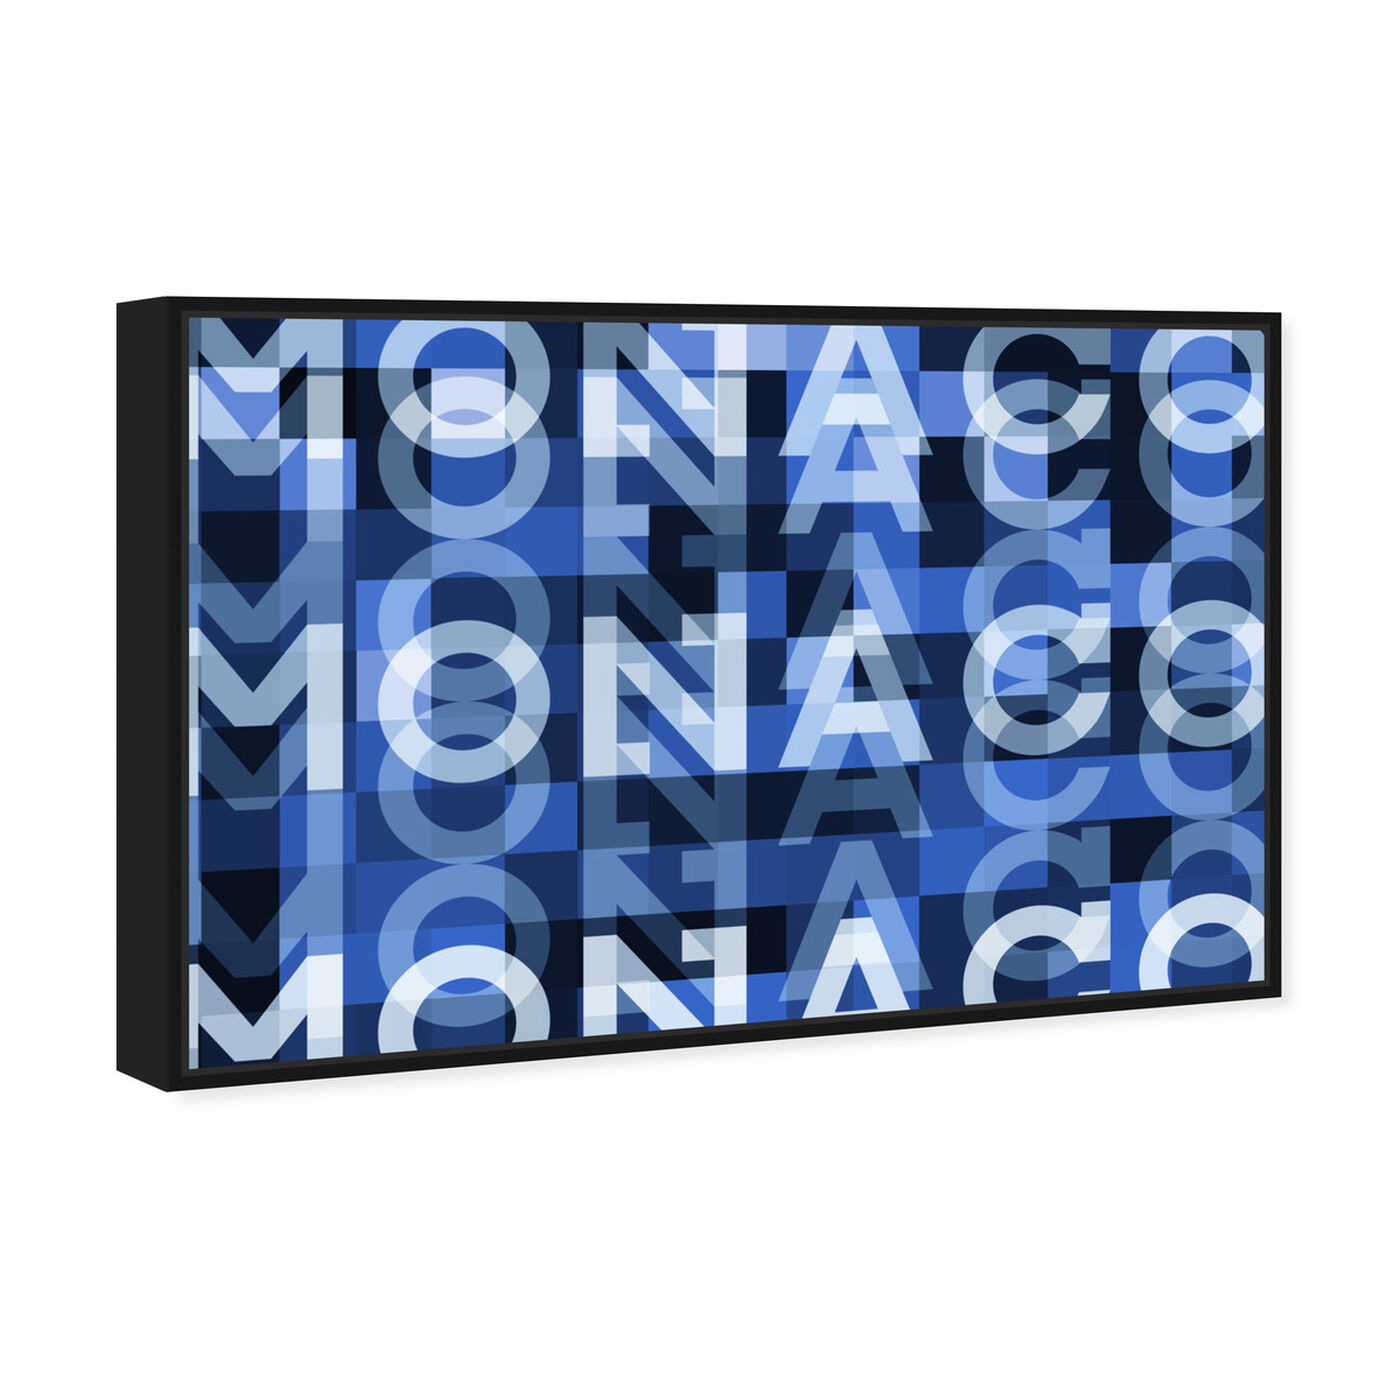 Angled view of Monaco featuring world and countries and european countries art.